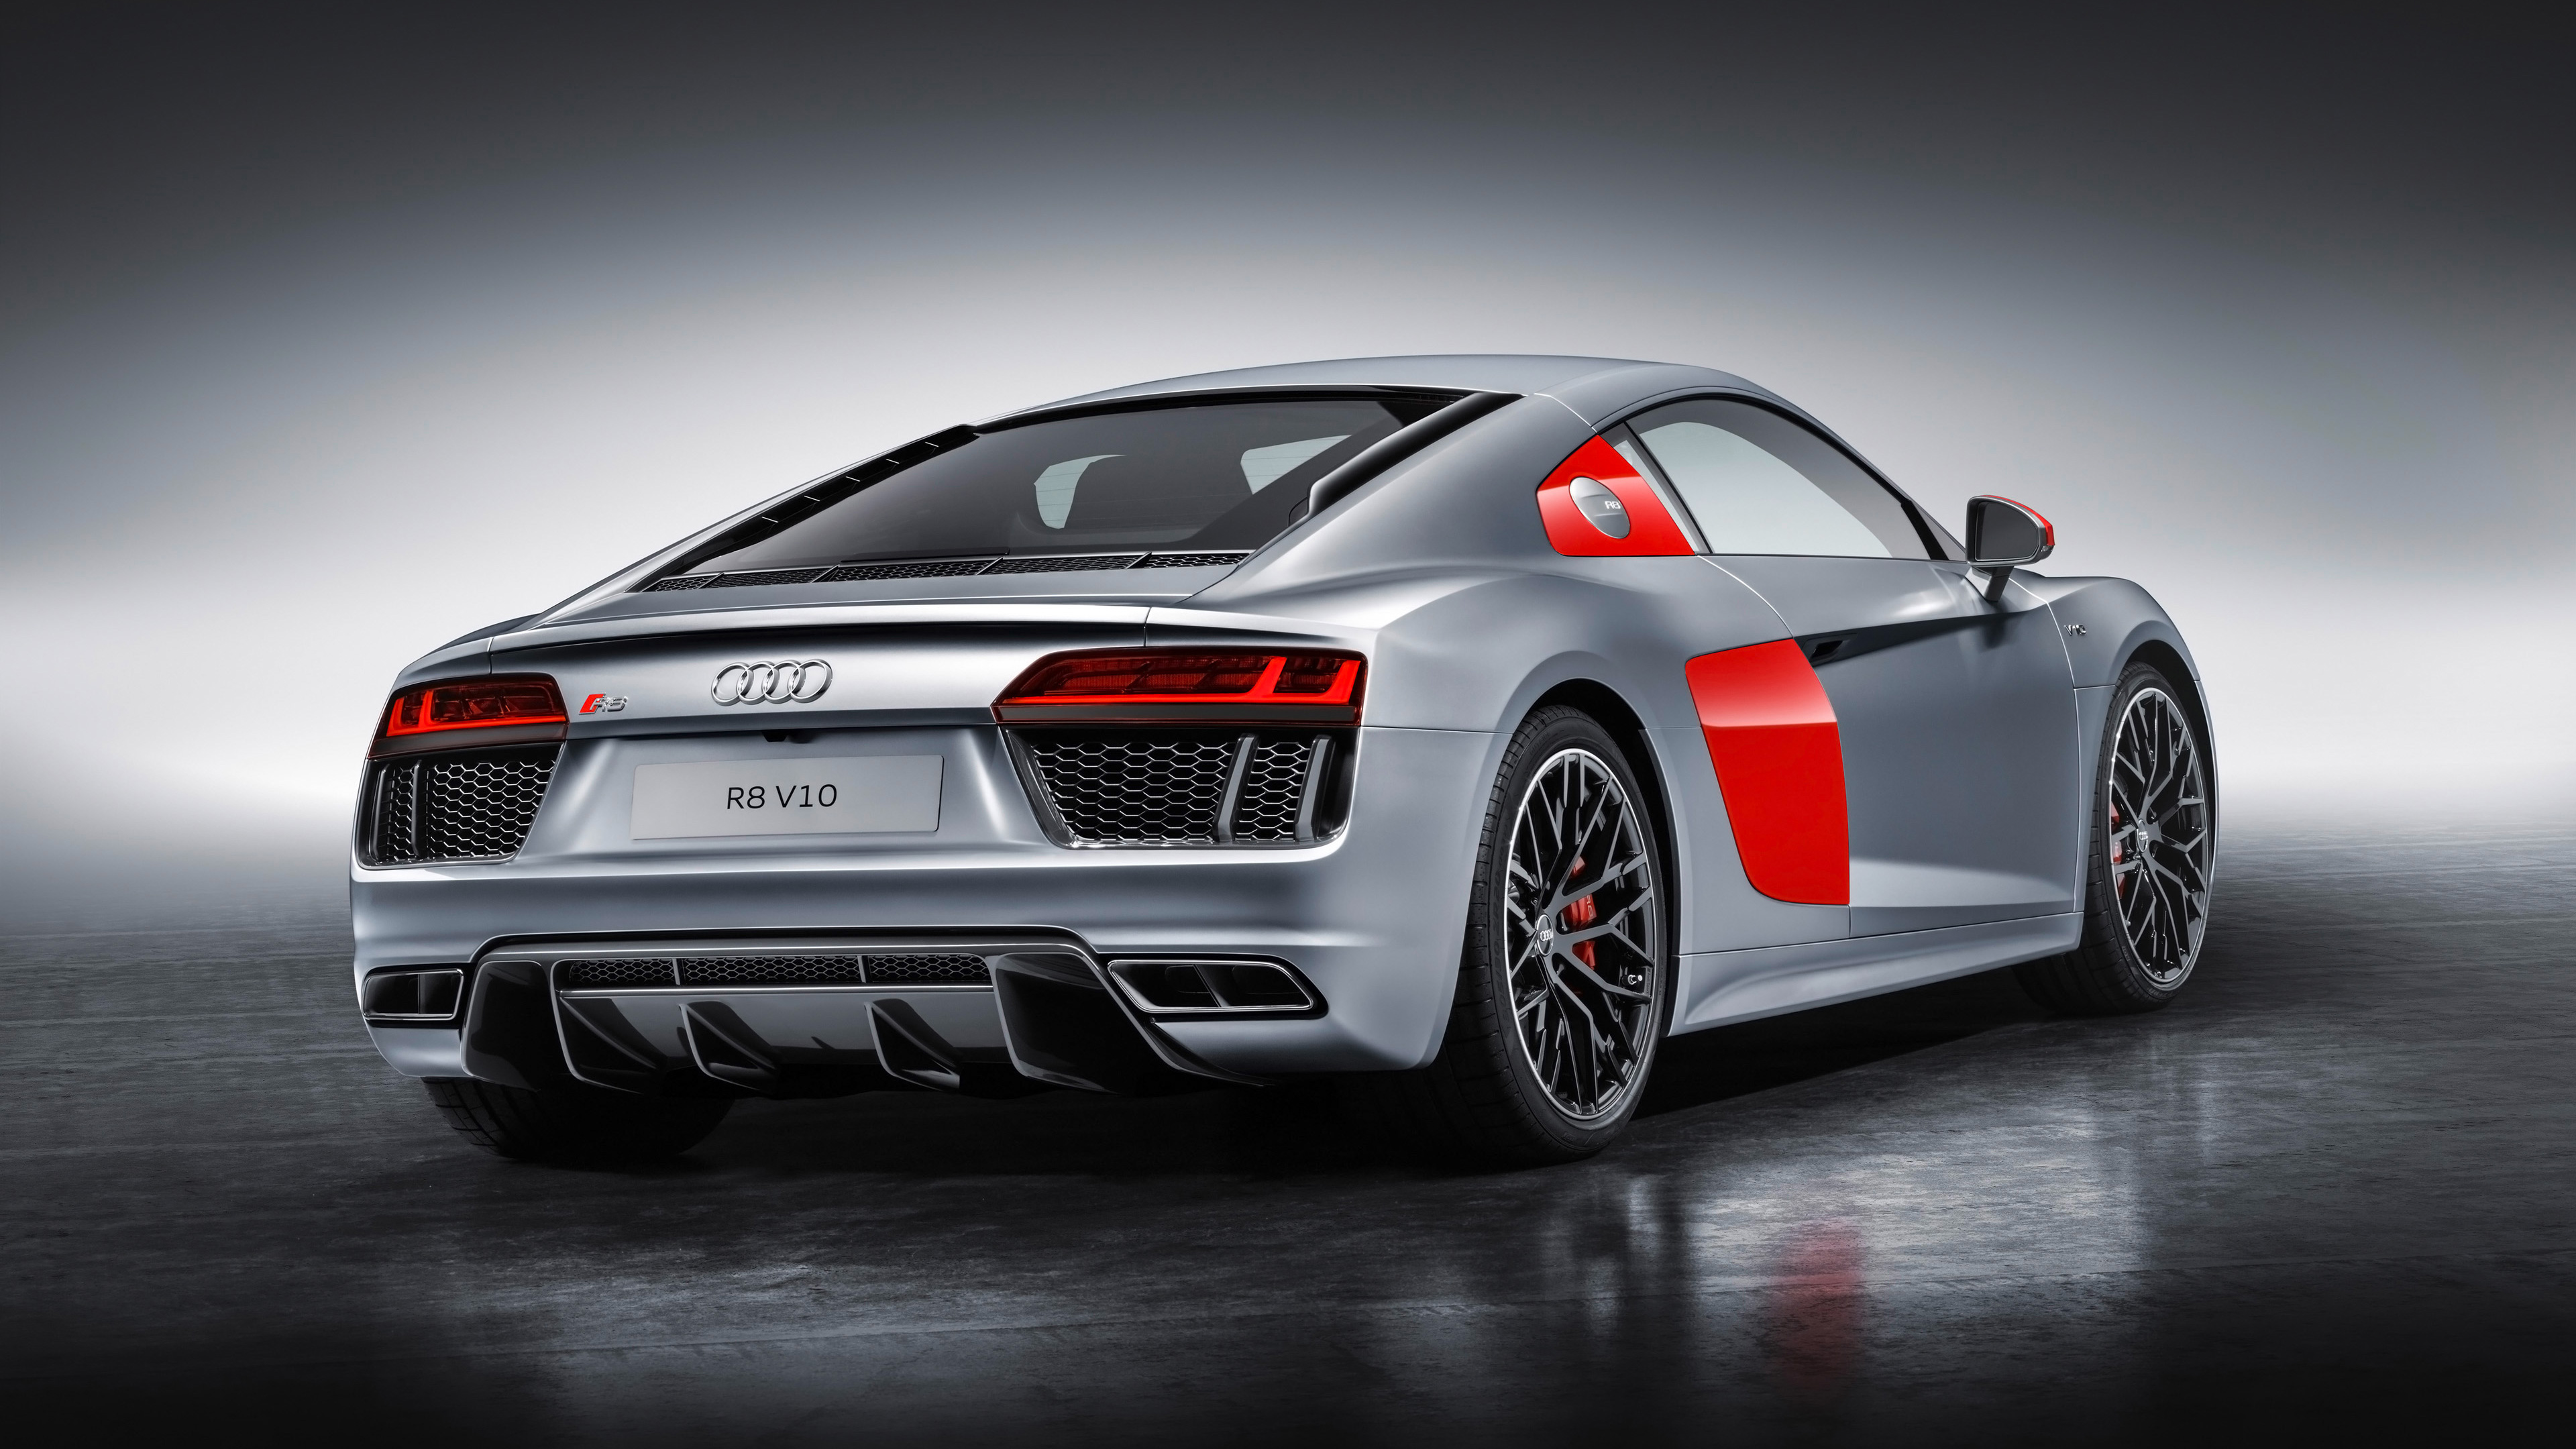 2018 audi r8 coupe sport edition 2 wallpaper hd car. Black Bedroom Furniture Sets. Home Design Ideas